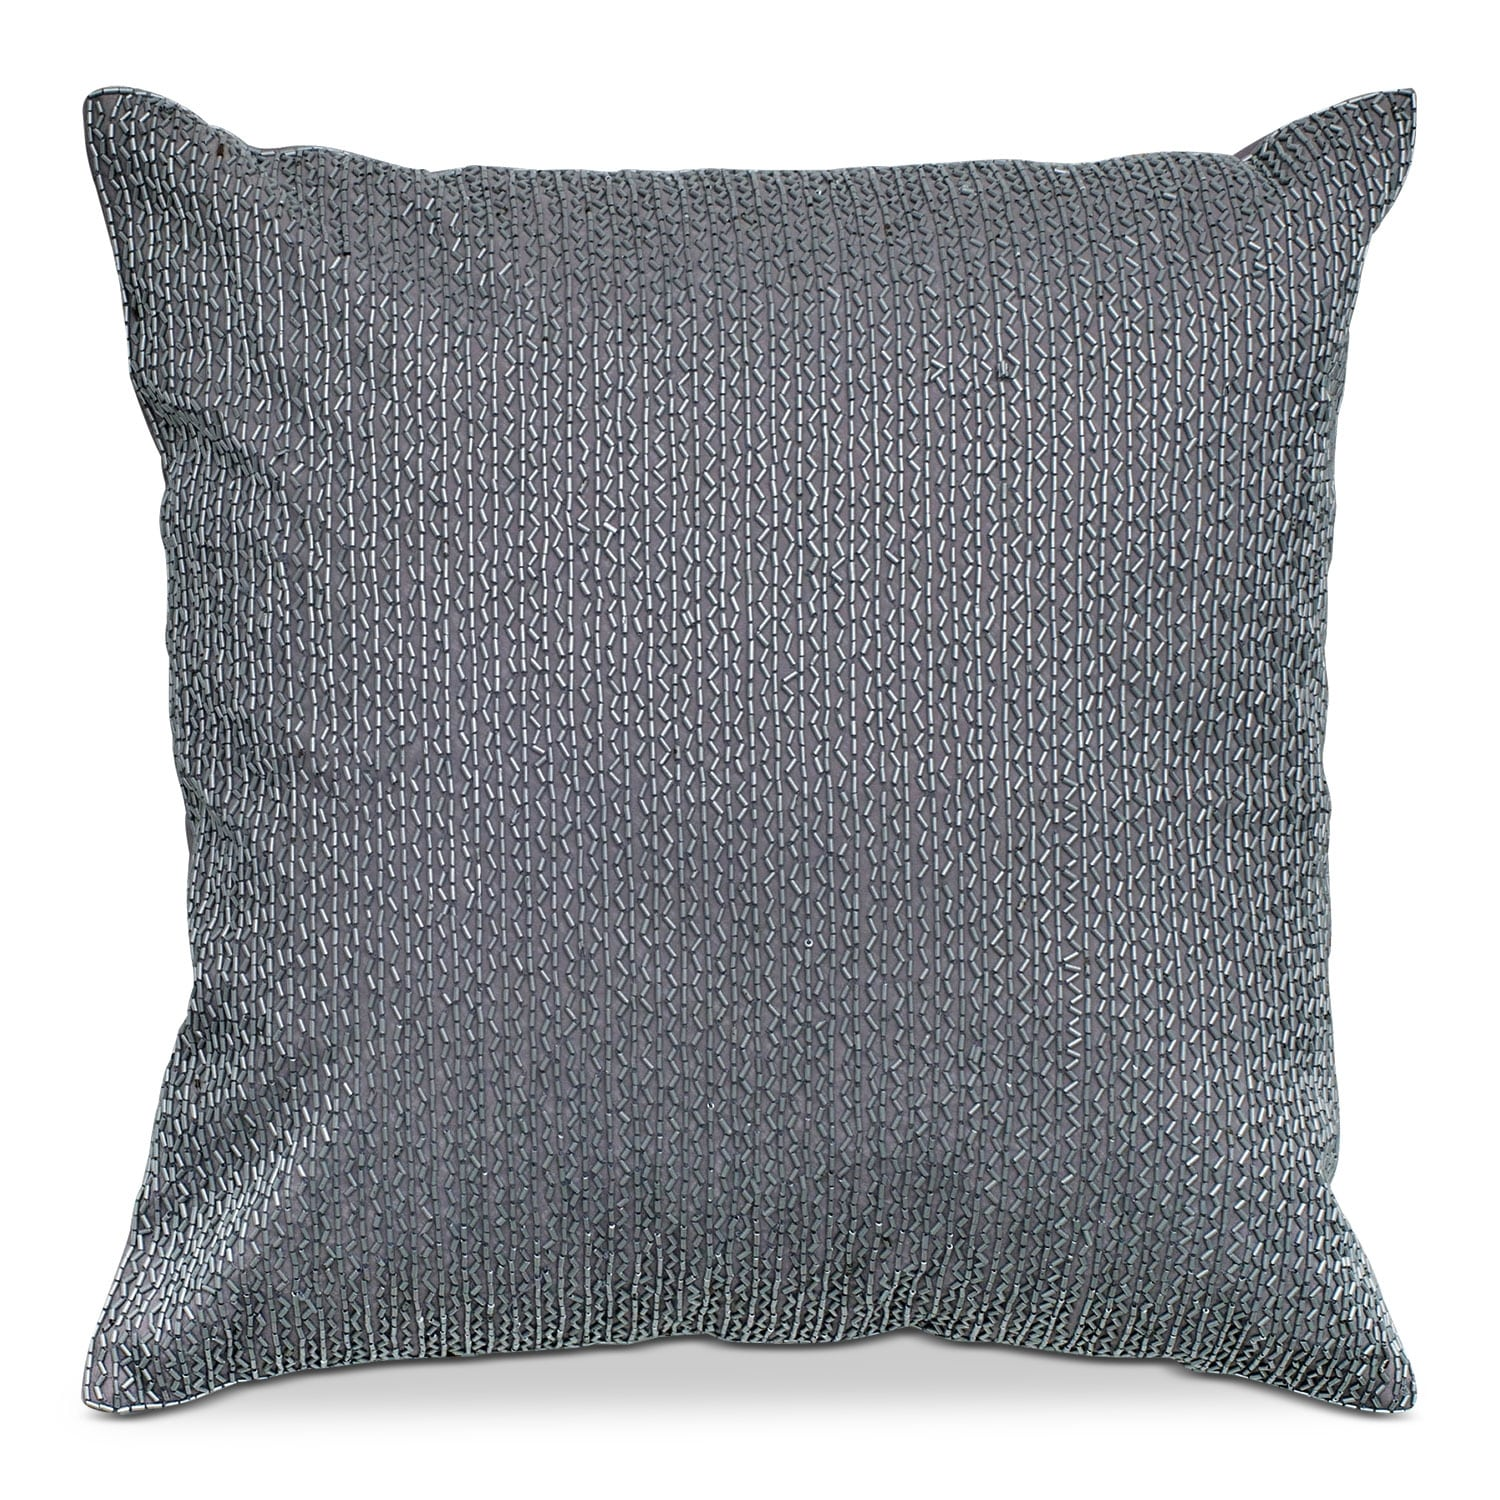 Marissa Decorative Pillow